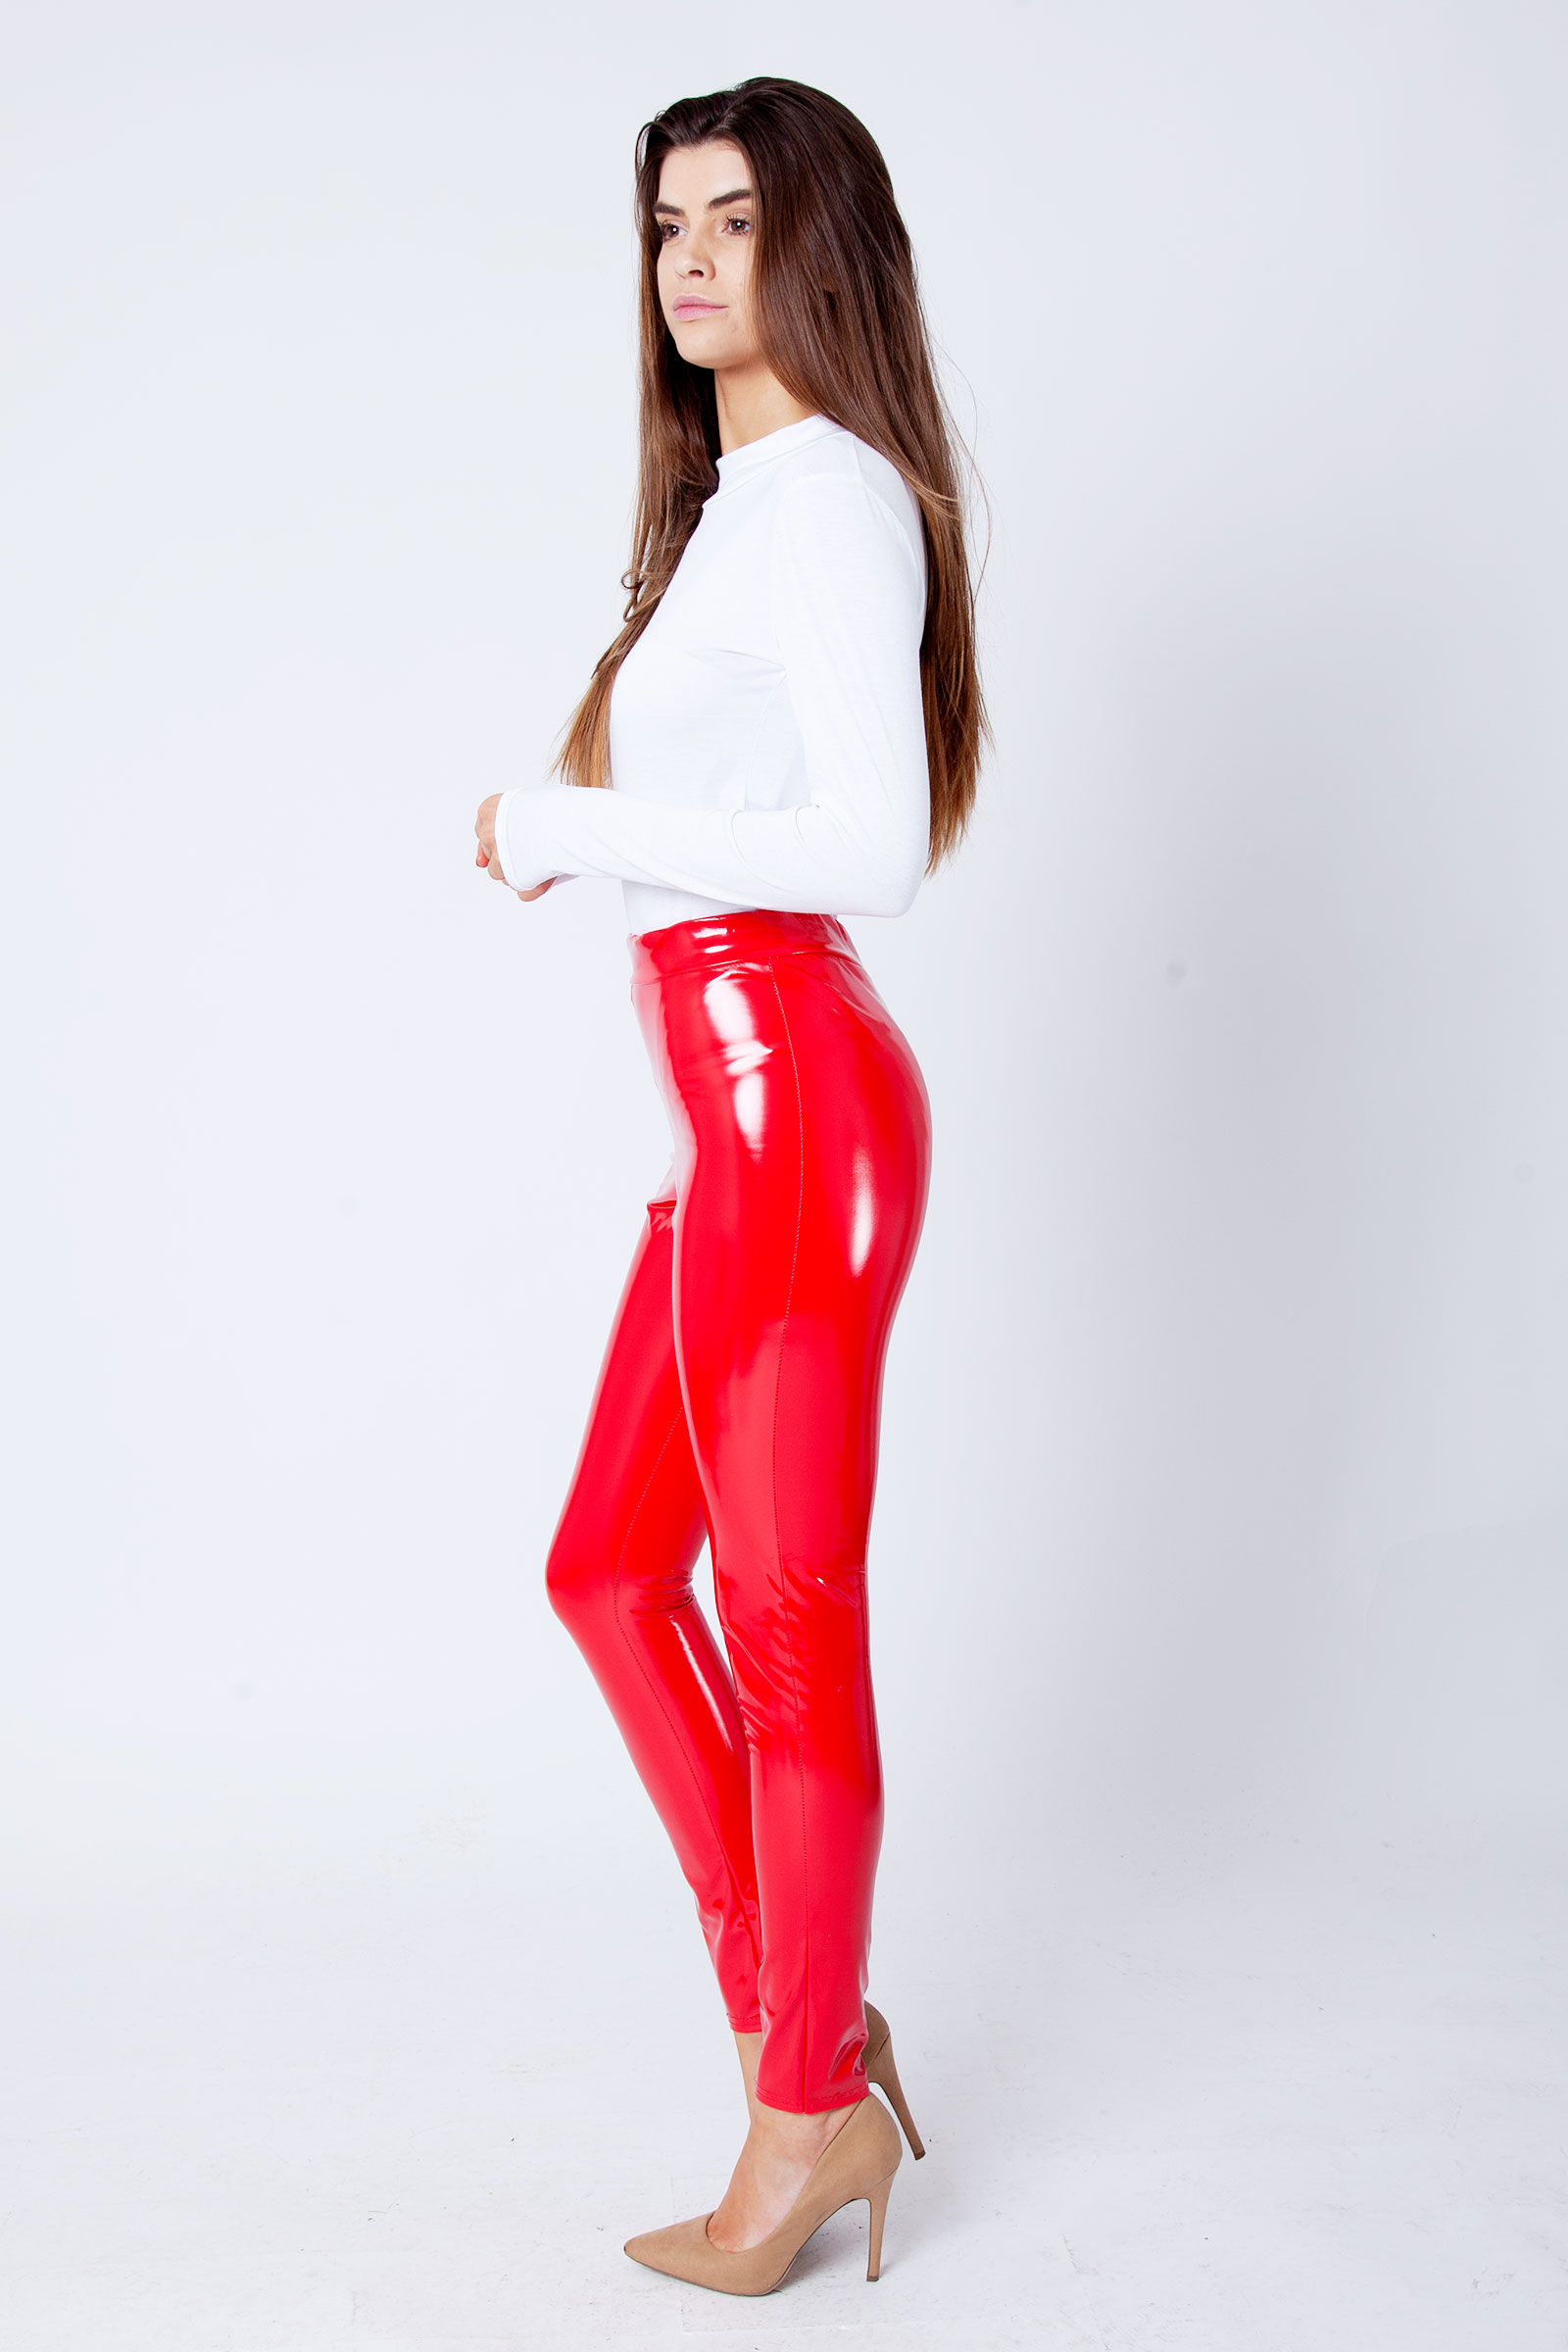 2a89578c3fd Red Wet Look Shiny Vinyl PU Leggings